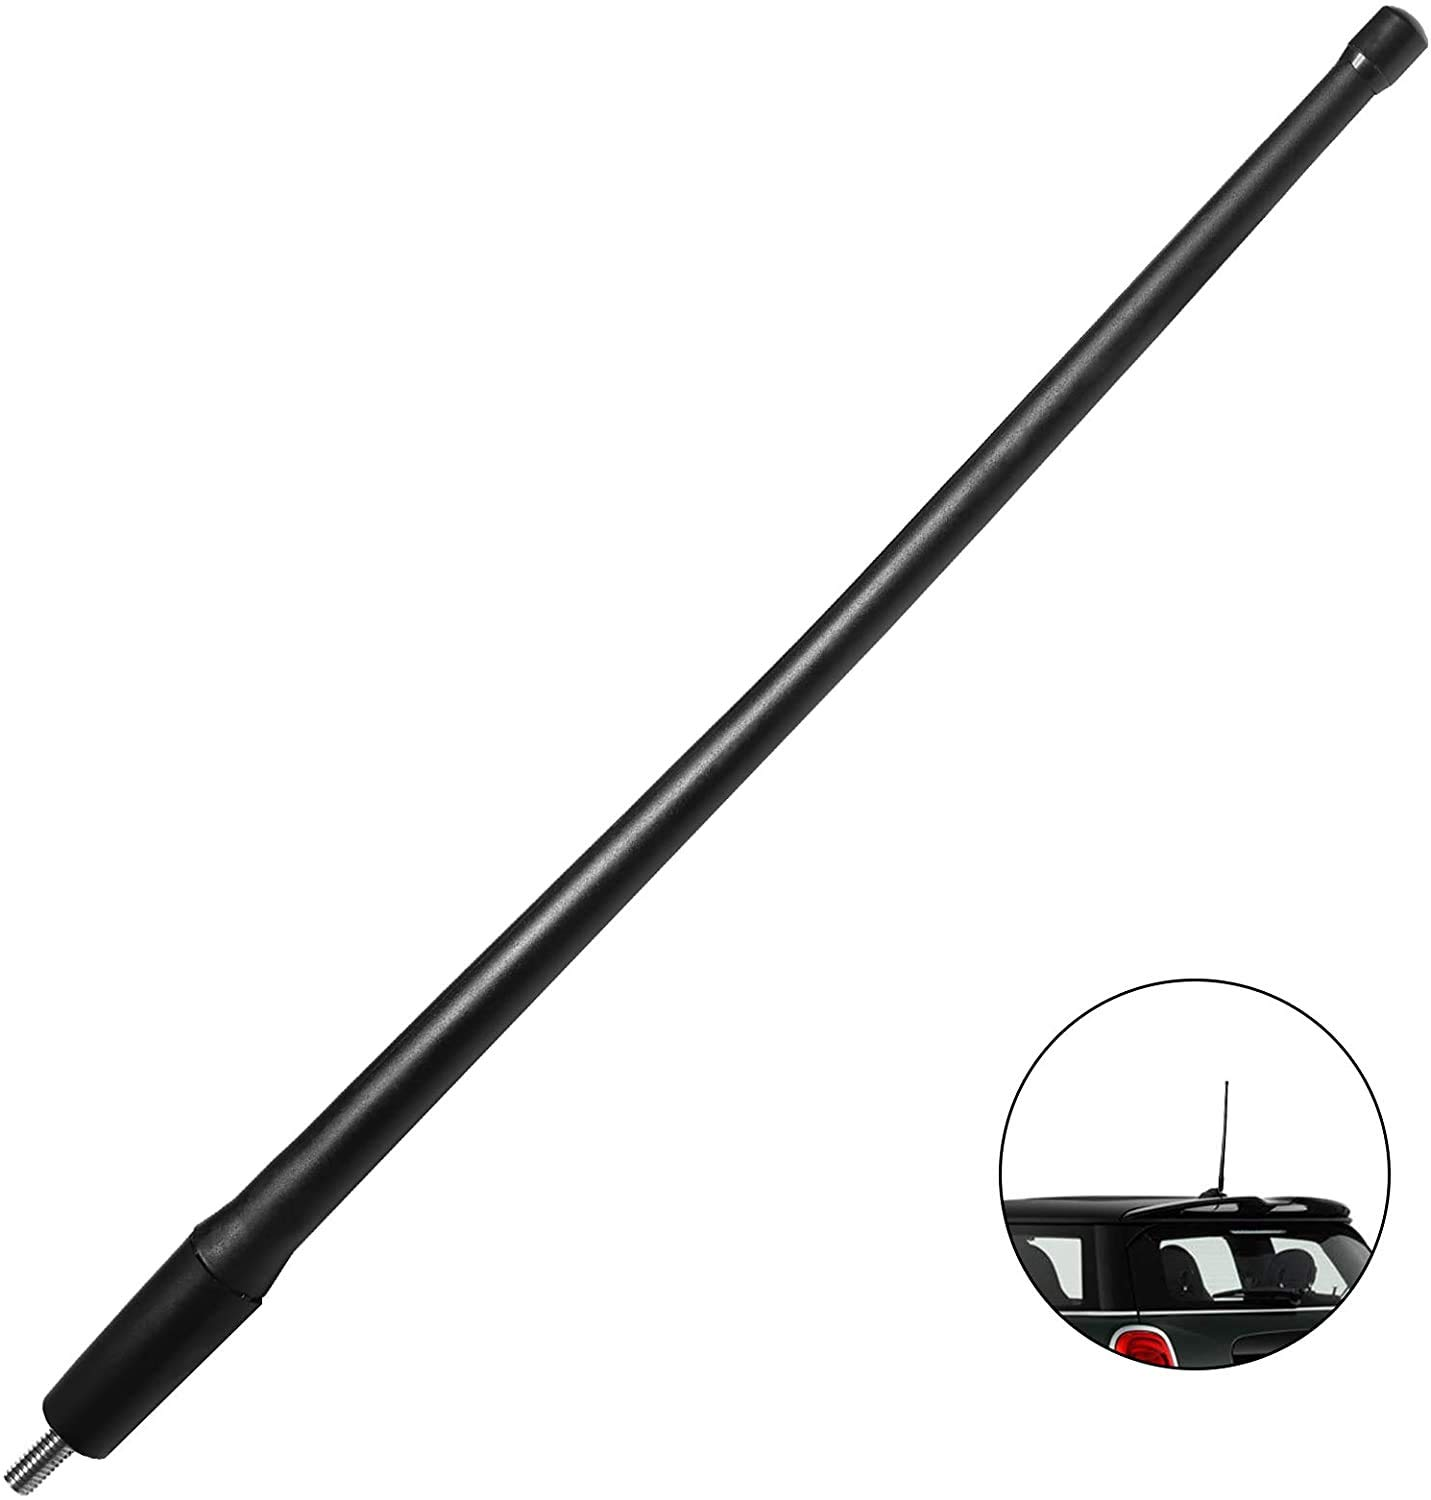 JAPower Automotive Antenna Compatible with Mini Cooper 2001-2018   13 inches - Black